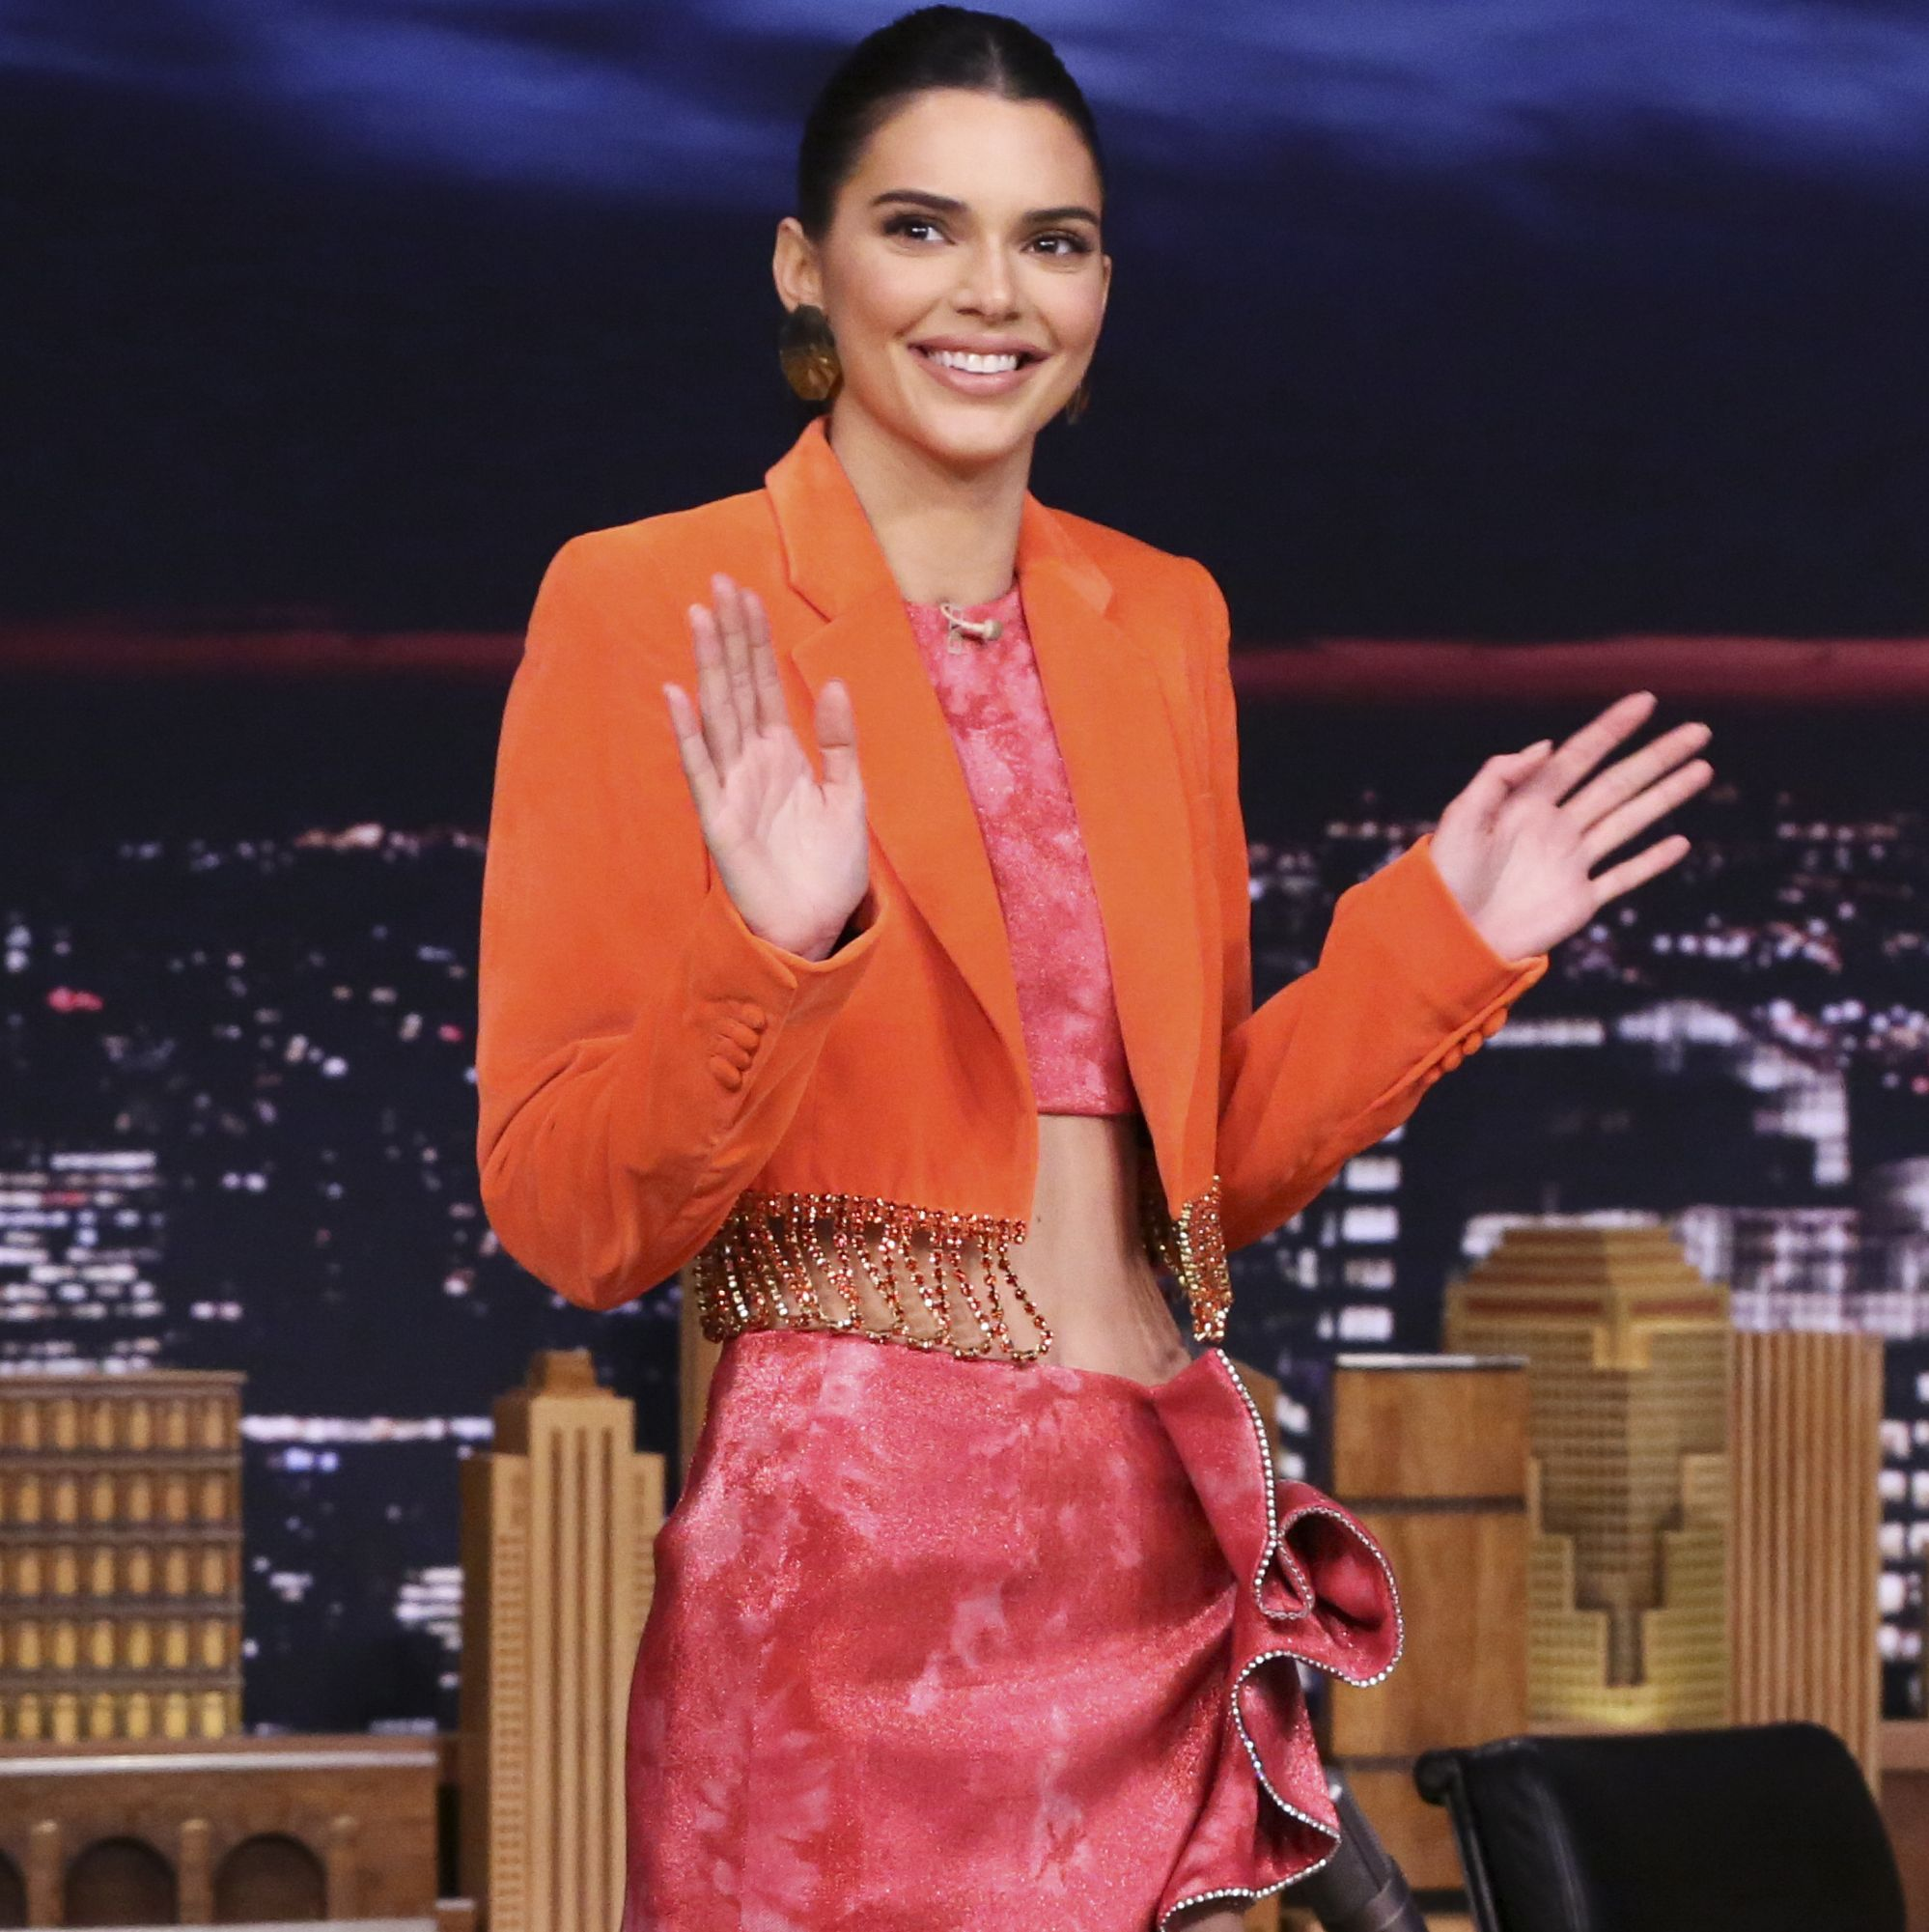 Kendall Jenner Legit Ate A Rubber Shoe On National Television